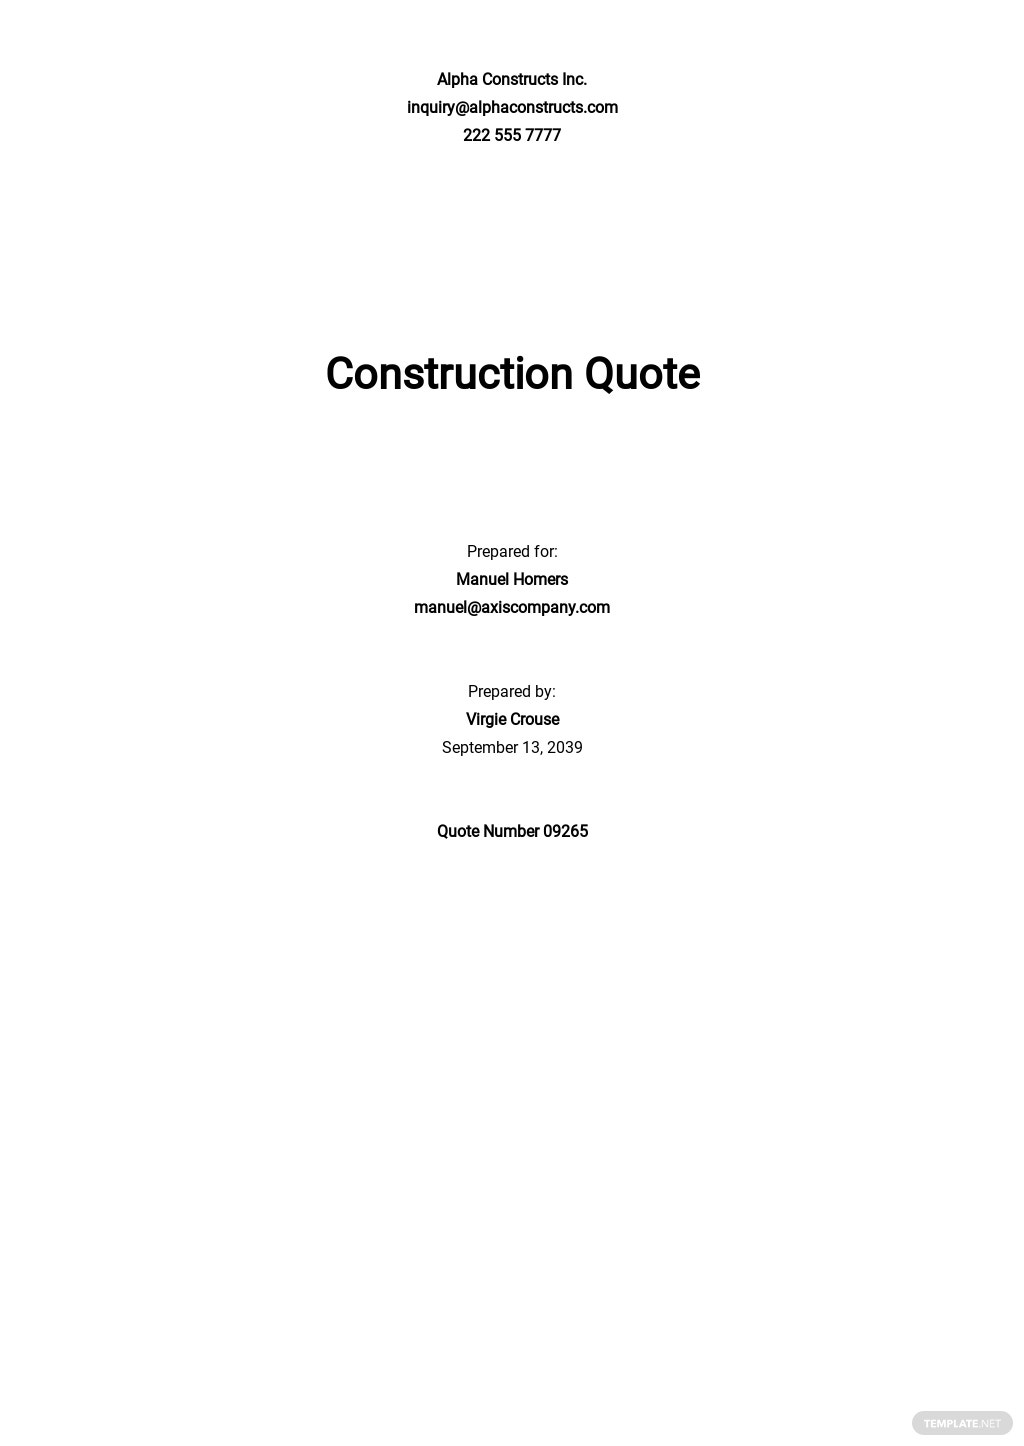 Construction Request for Quotation Template